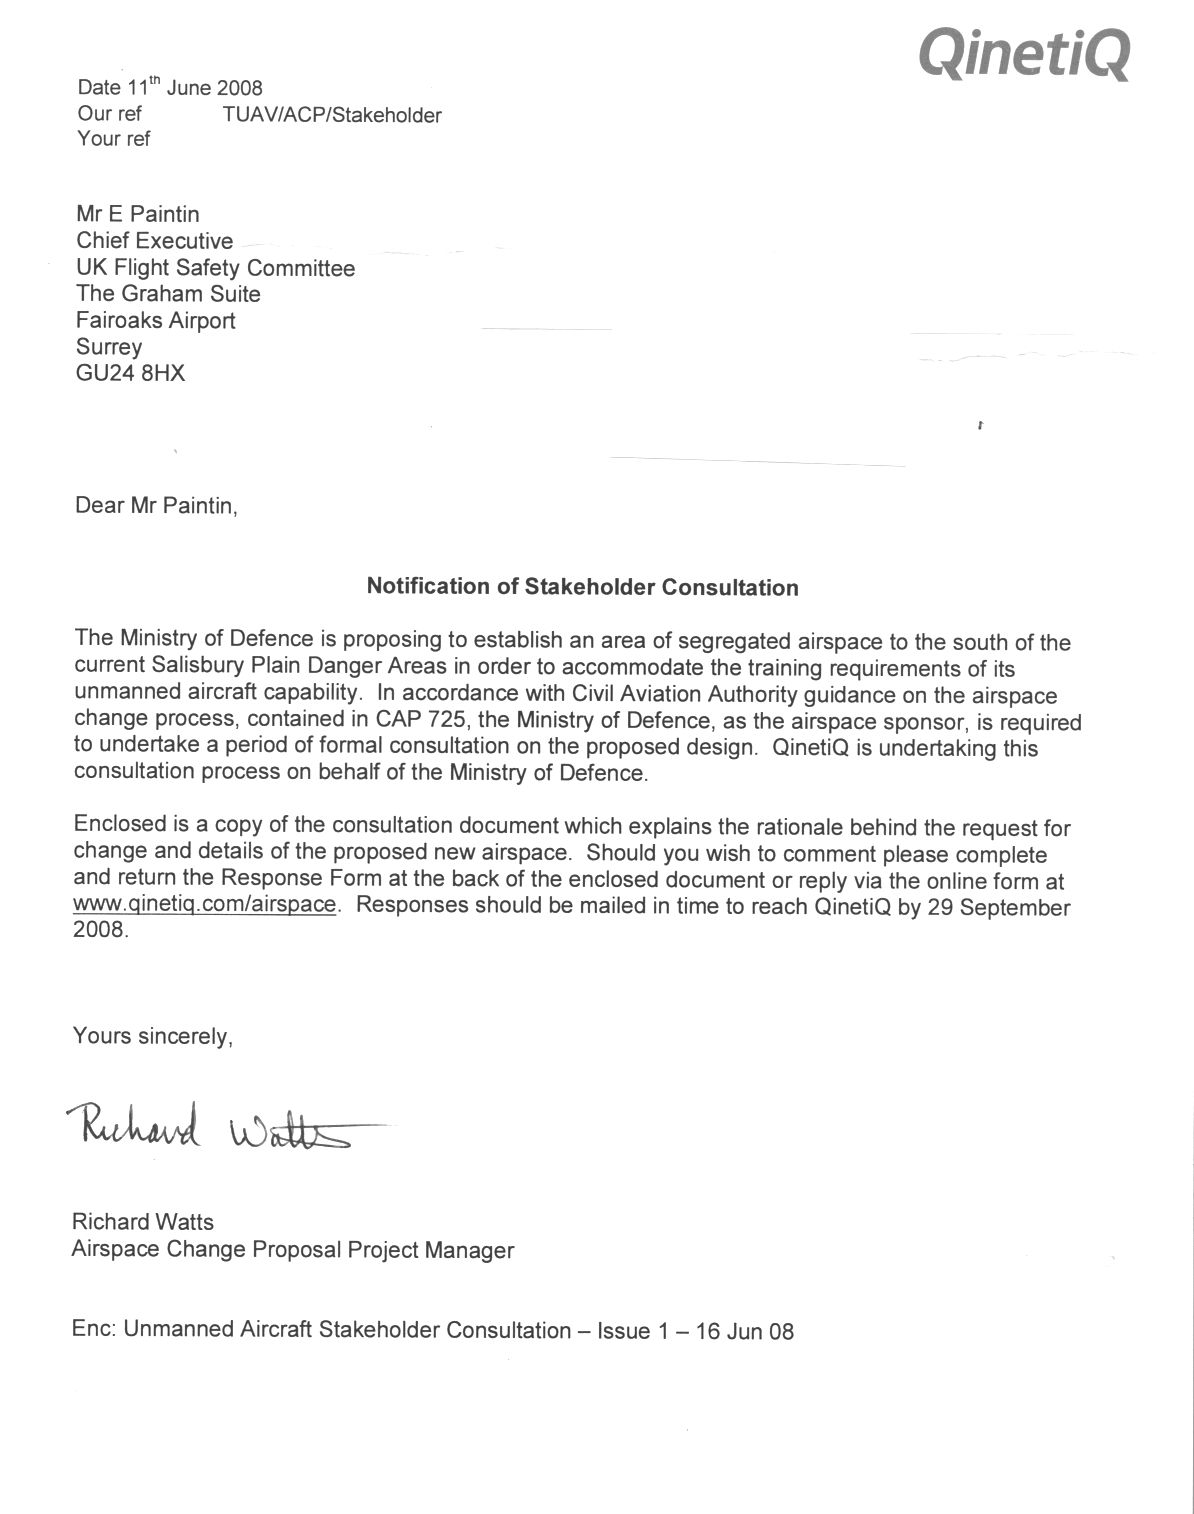 Qinetiq stakeholder consultation letter june 2008 ukfsc for Addressing relocation in cover letter